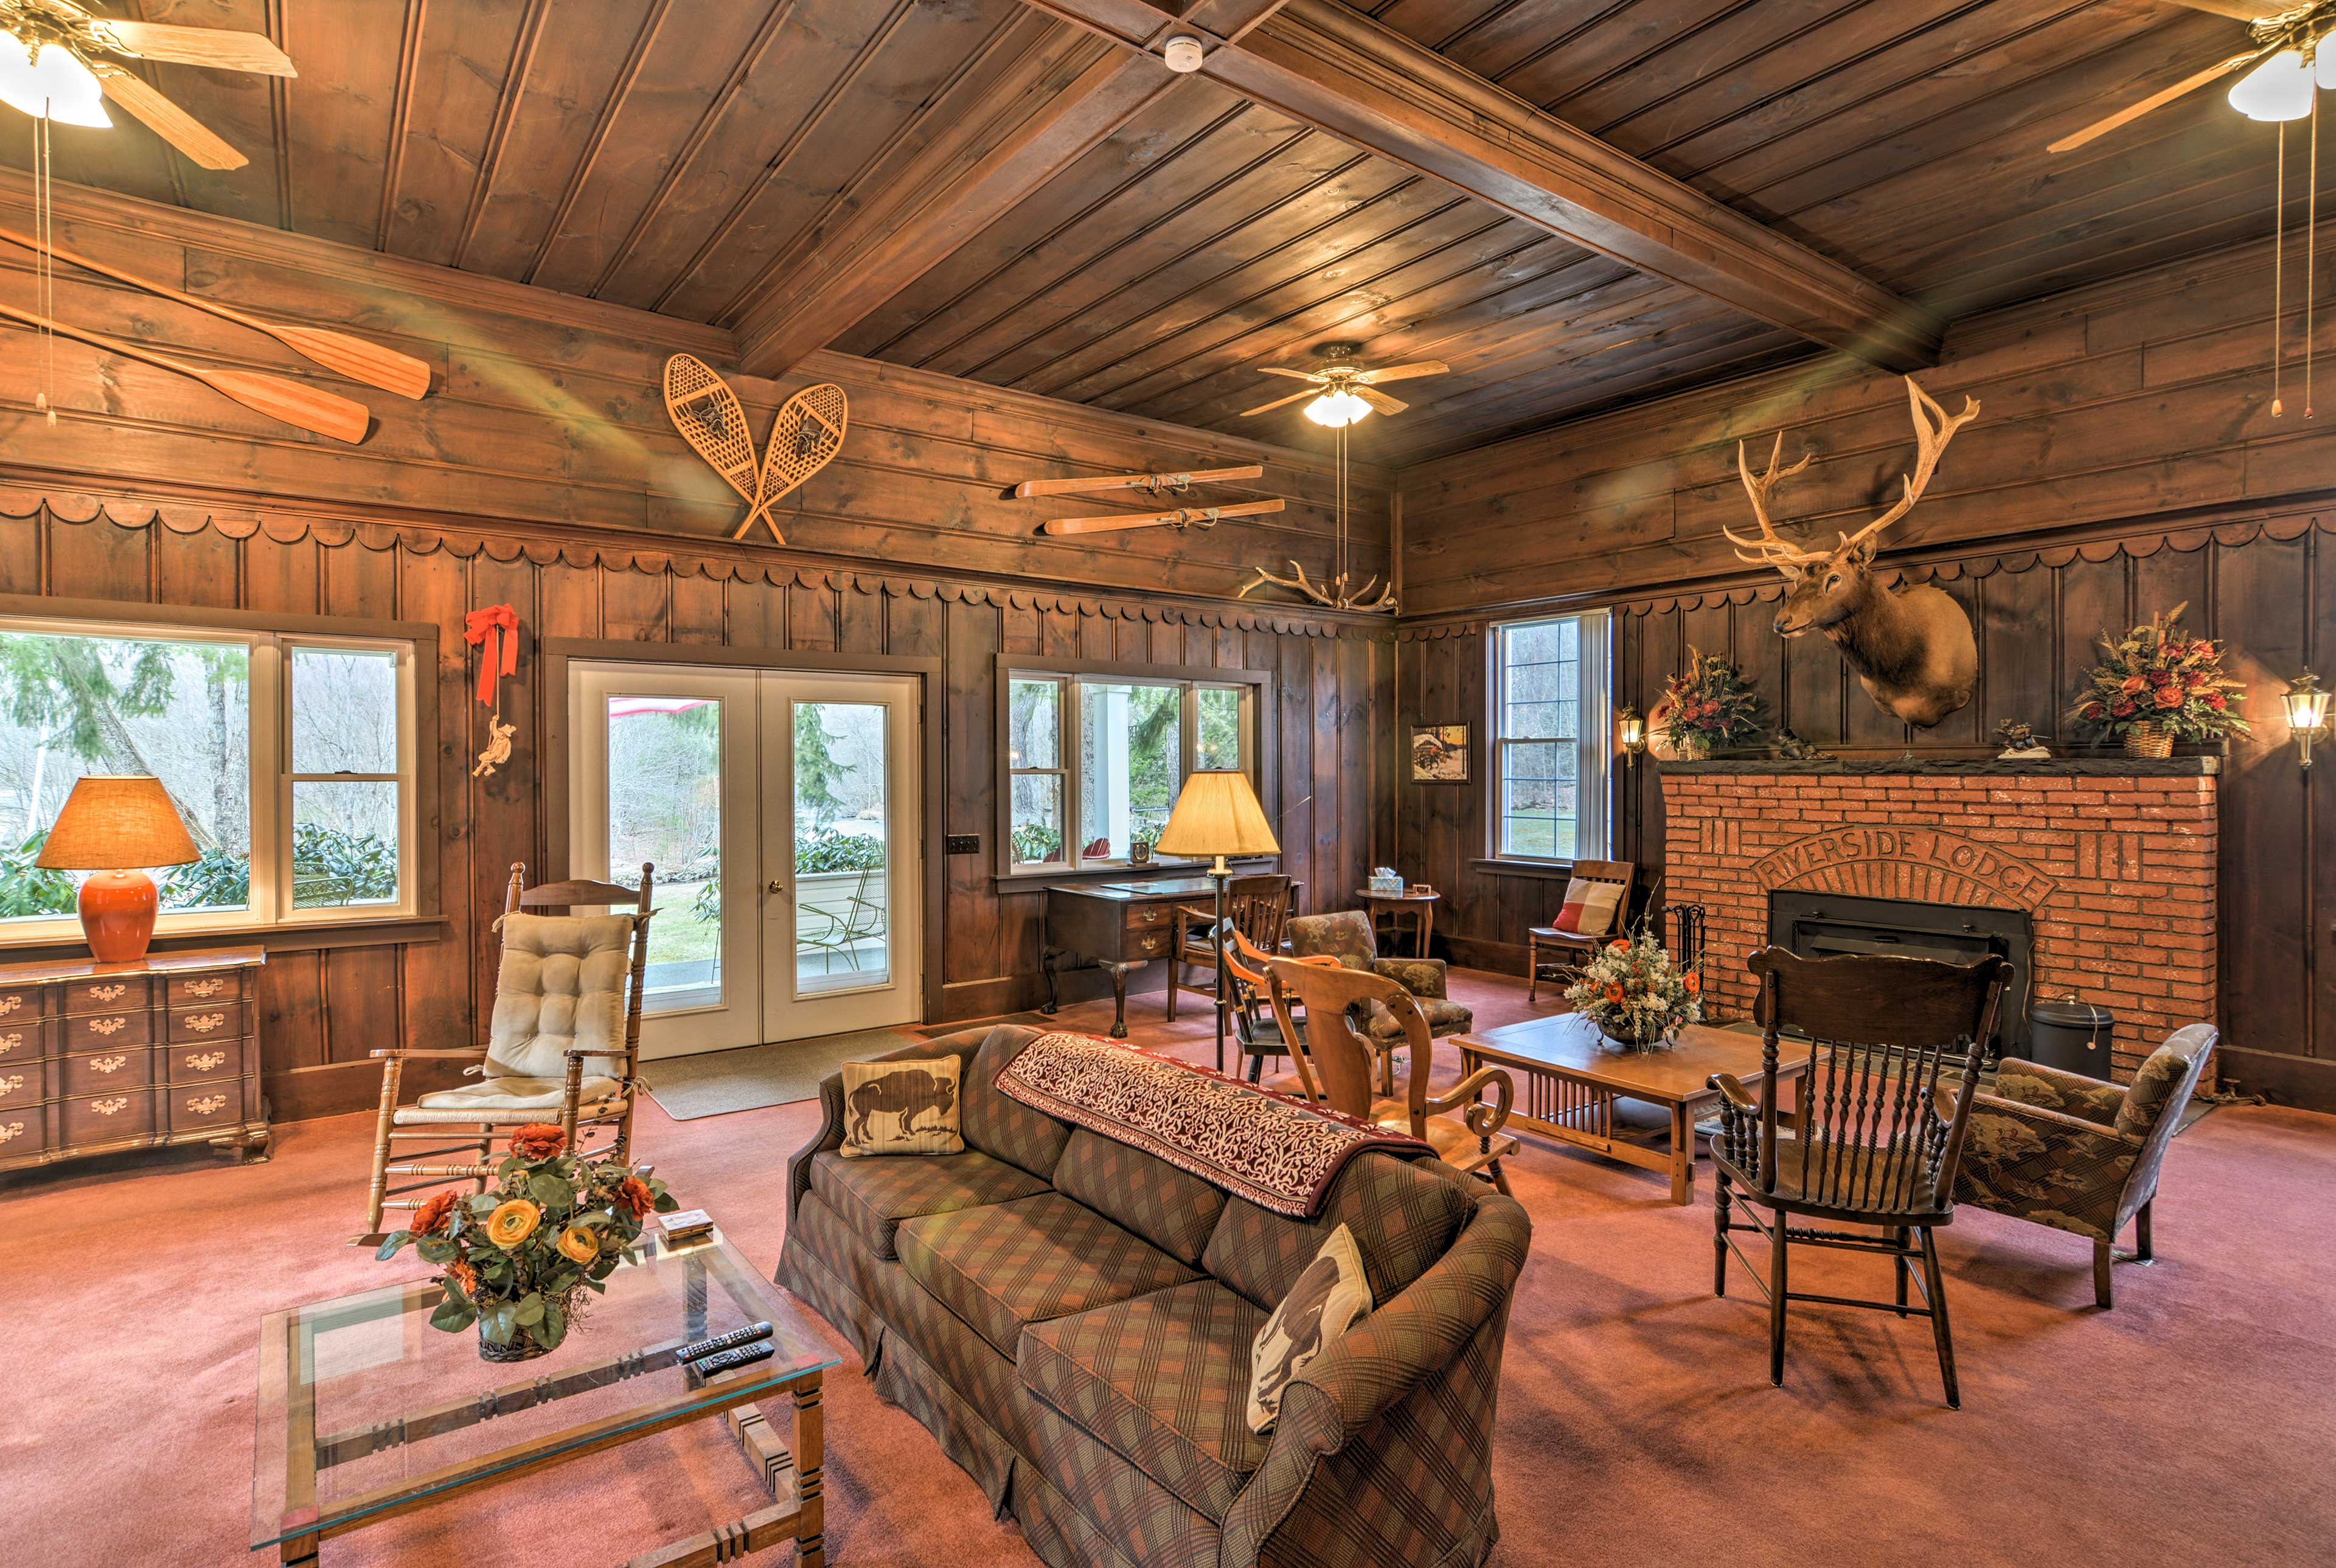 'The Riverside Lodge' is the ideal home for your next Wilcox getaway!